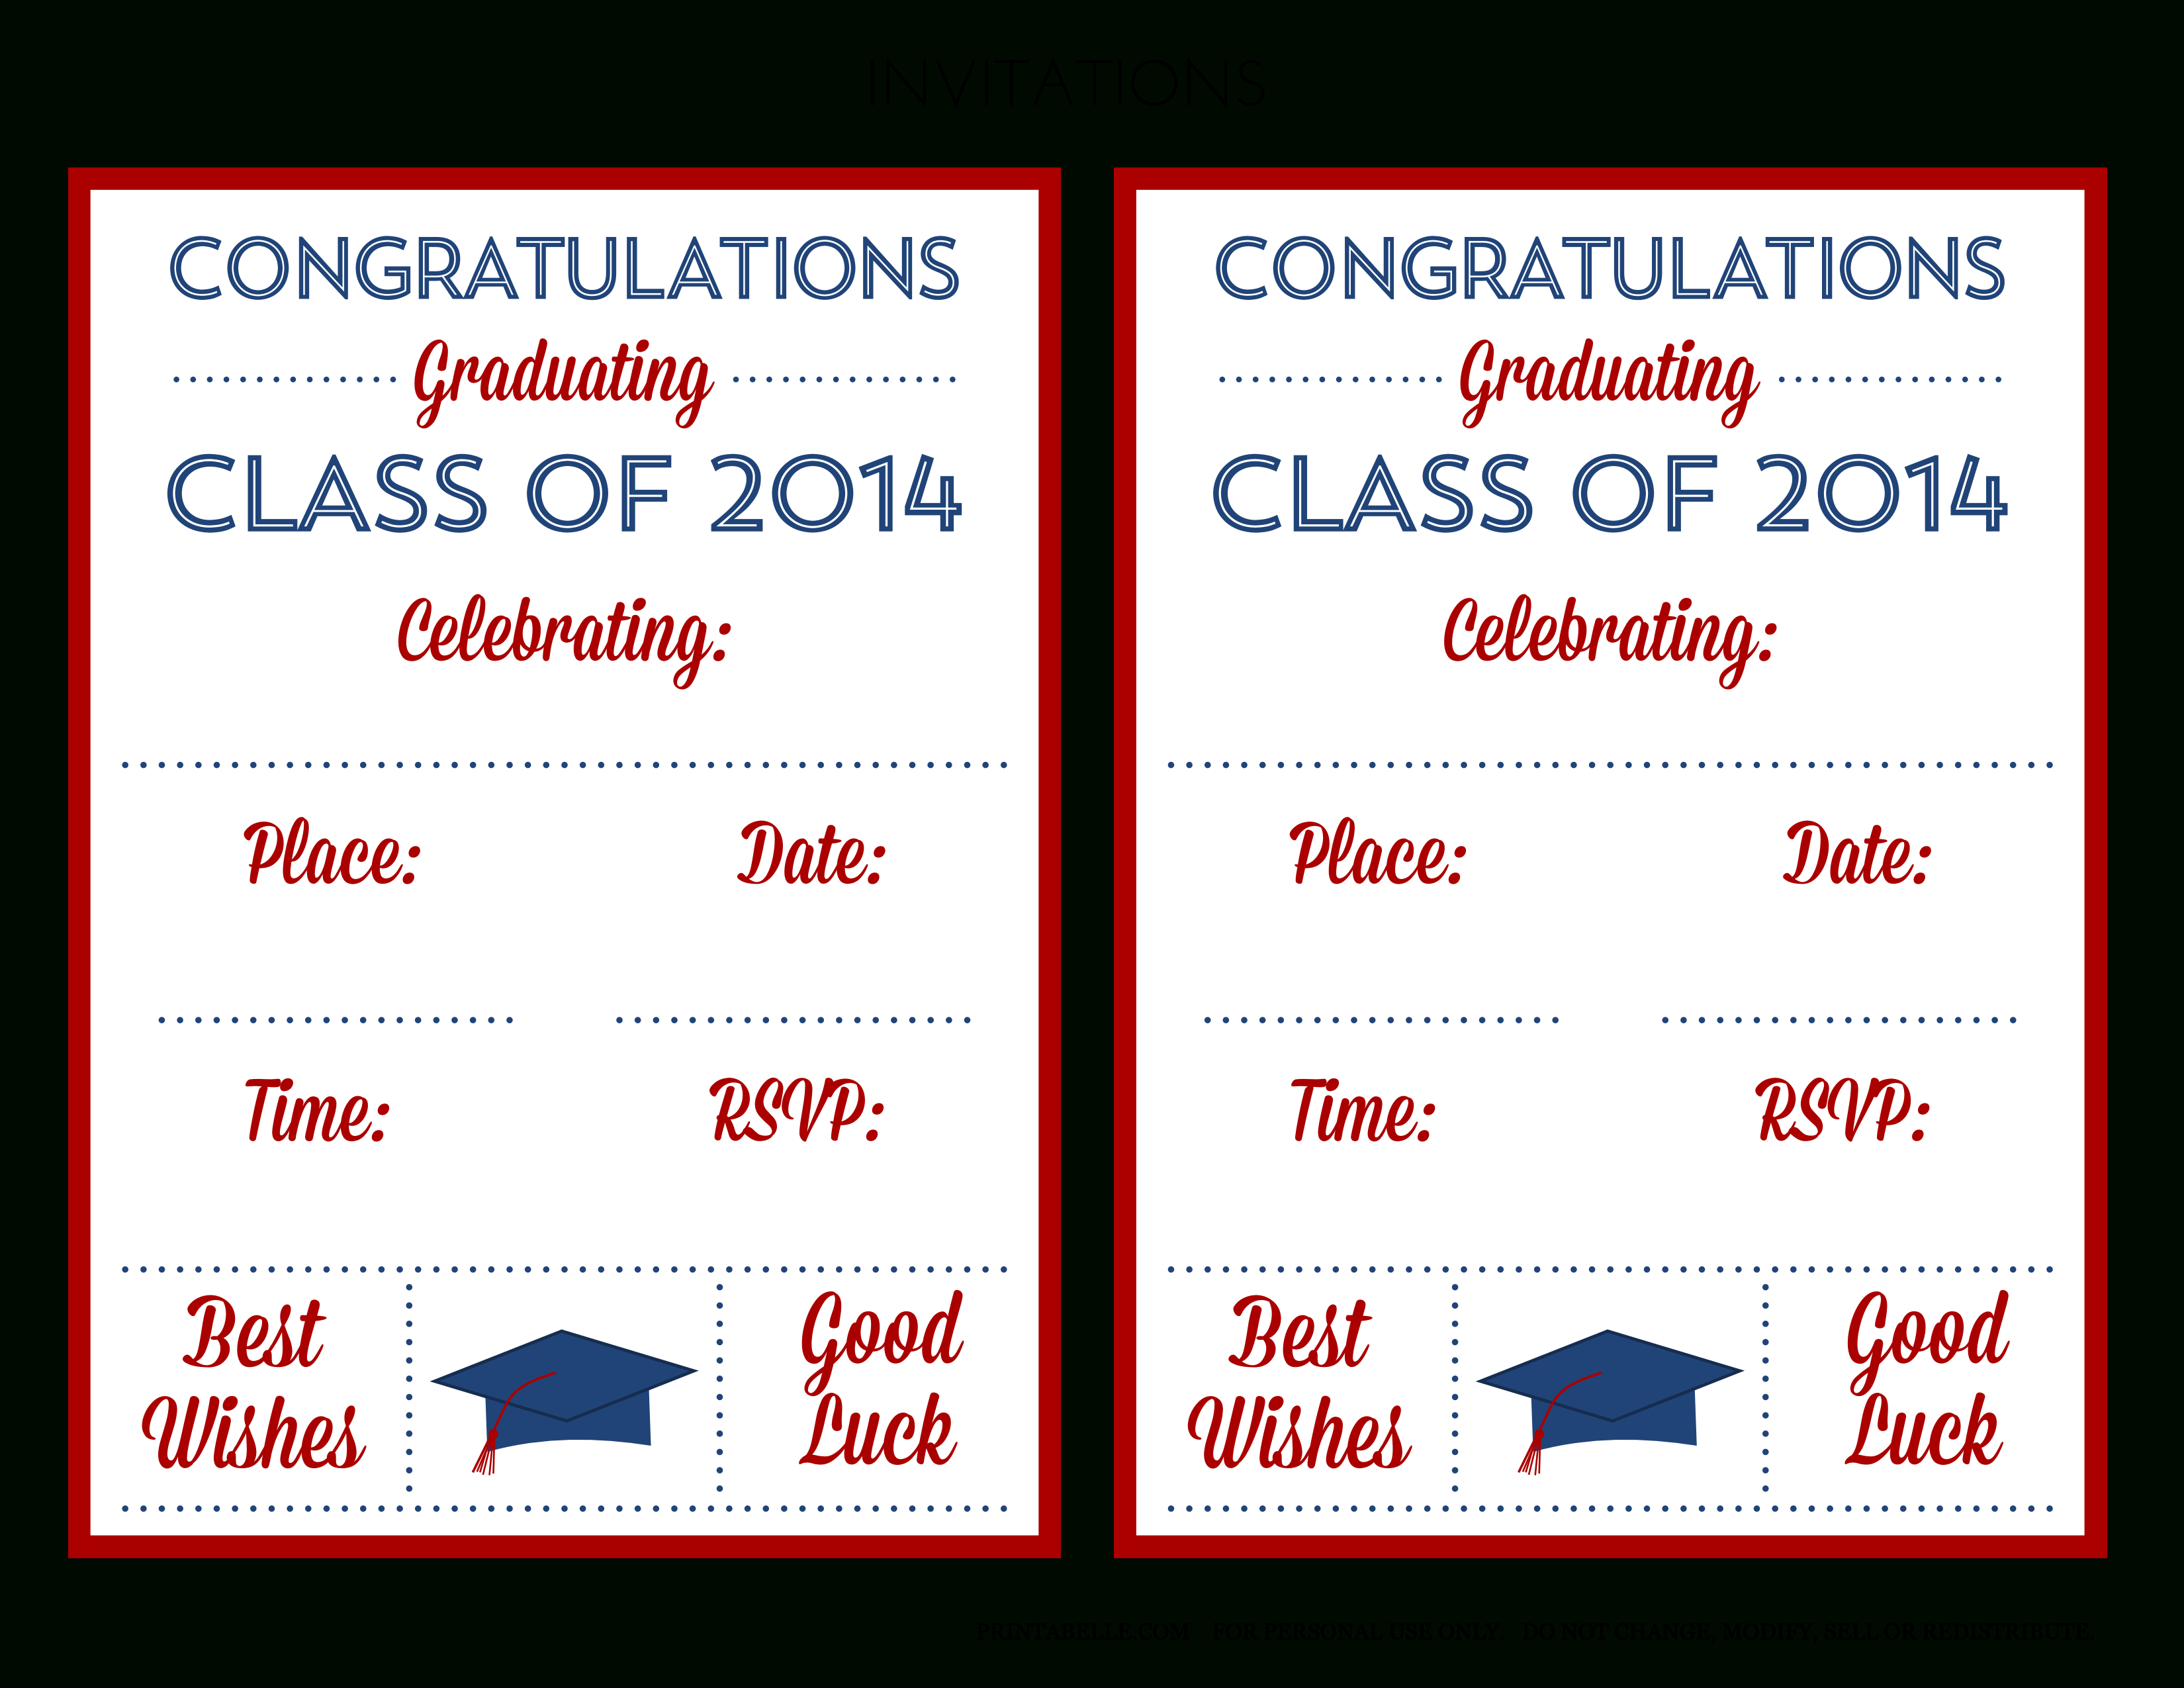 Free 2014 Graduation Party Printables From Printabelle   Catch My Party - Free Printable Graduation Party Invitations 2014